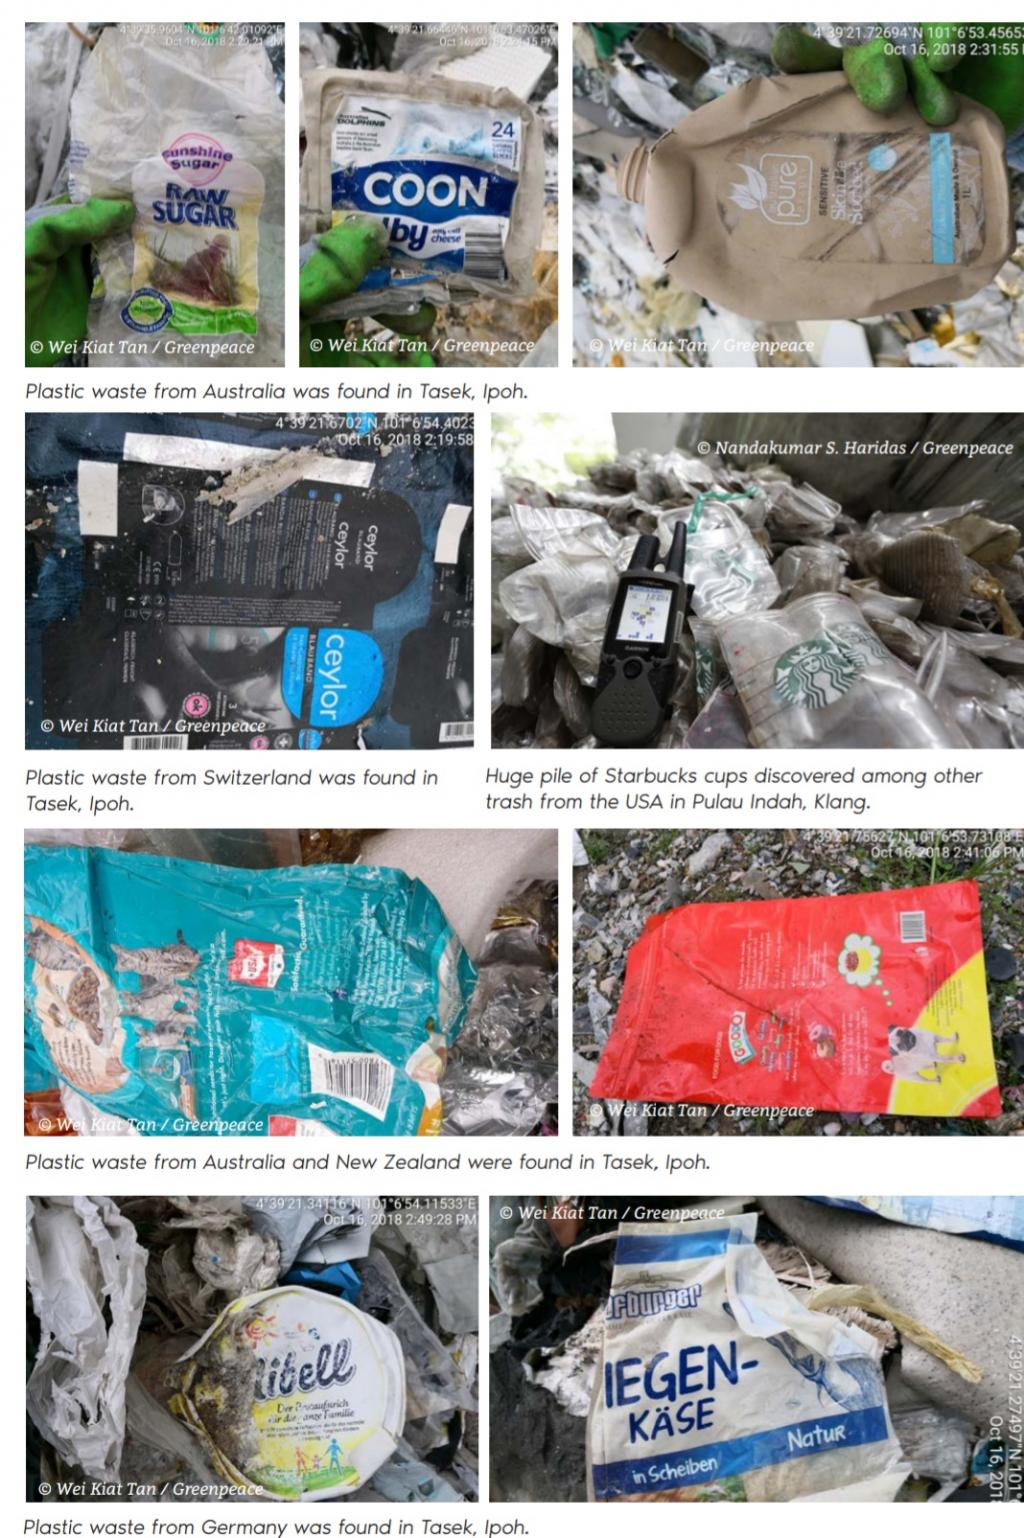 Source: The Recycling Myth — Malaysia and the Broken Global Recycling System